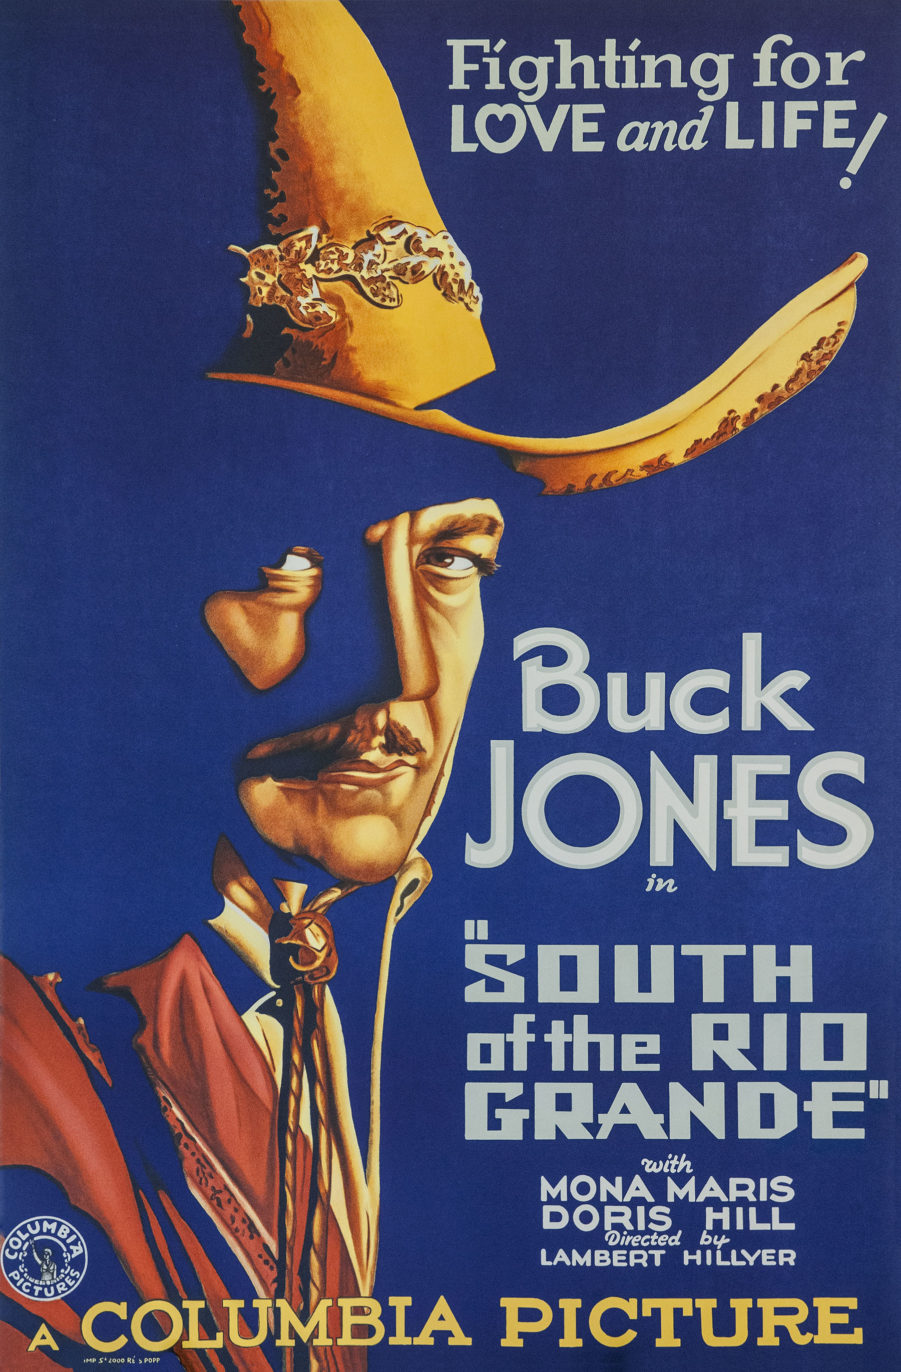 Buck Jones South of the Rio Grand classic movie poster vintage movie poster fine art lithograph one-sheet golden age of film mona maris doris hill lambert hillier